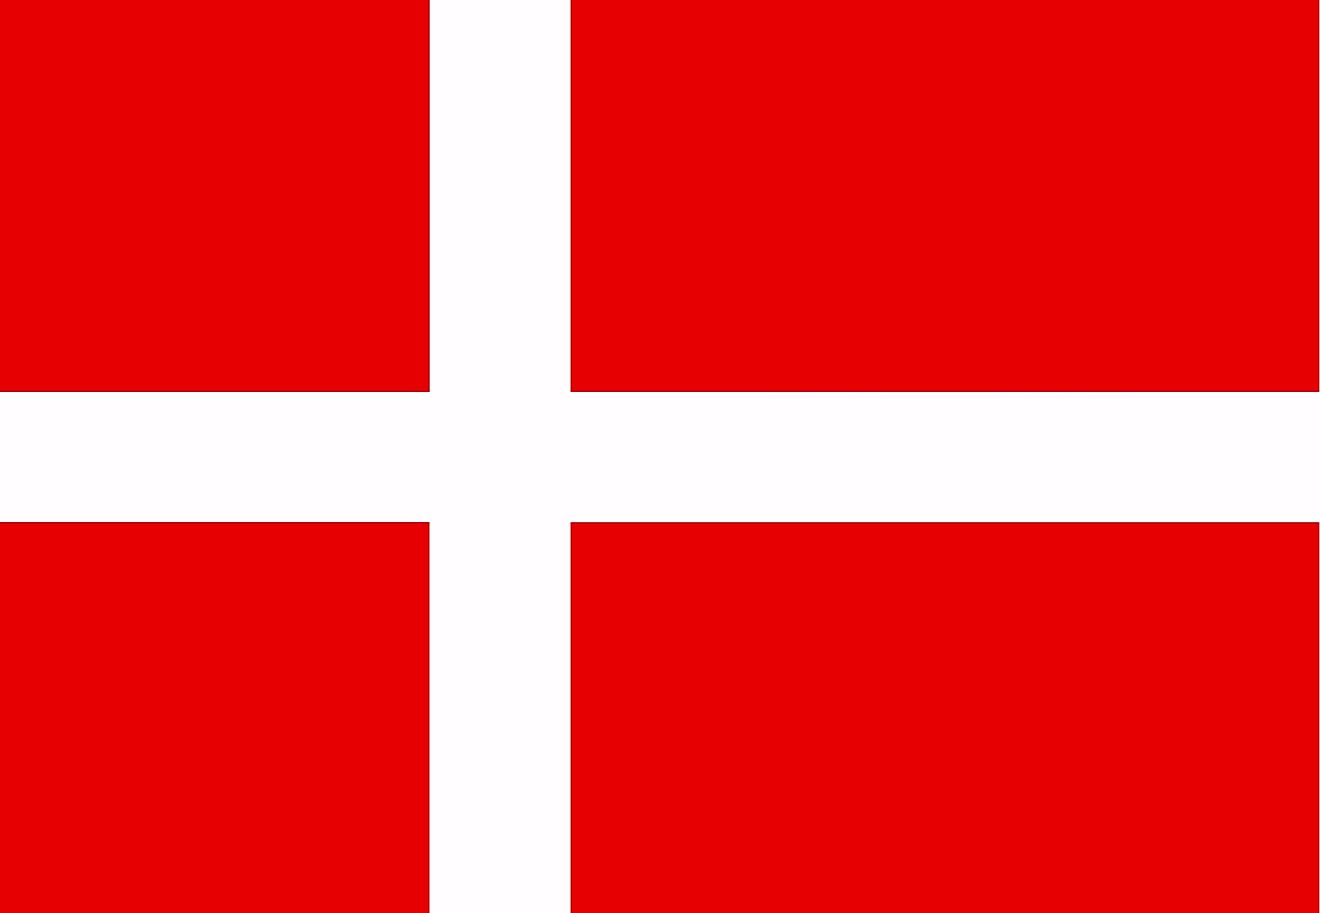 The National Flag of Denmark features a solid red field with a white Scandinavian cross that extends to the edges of the flag.